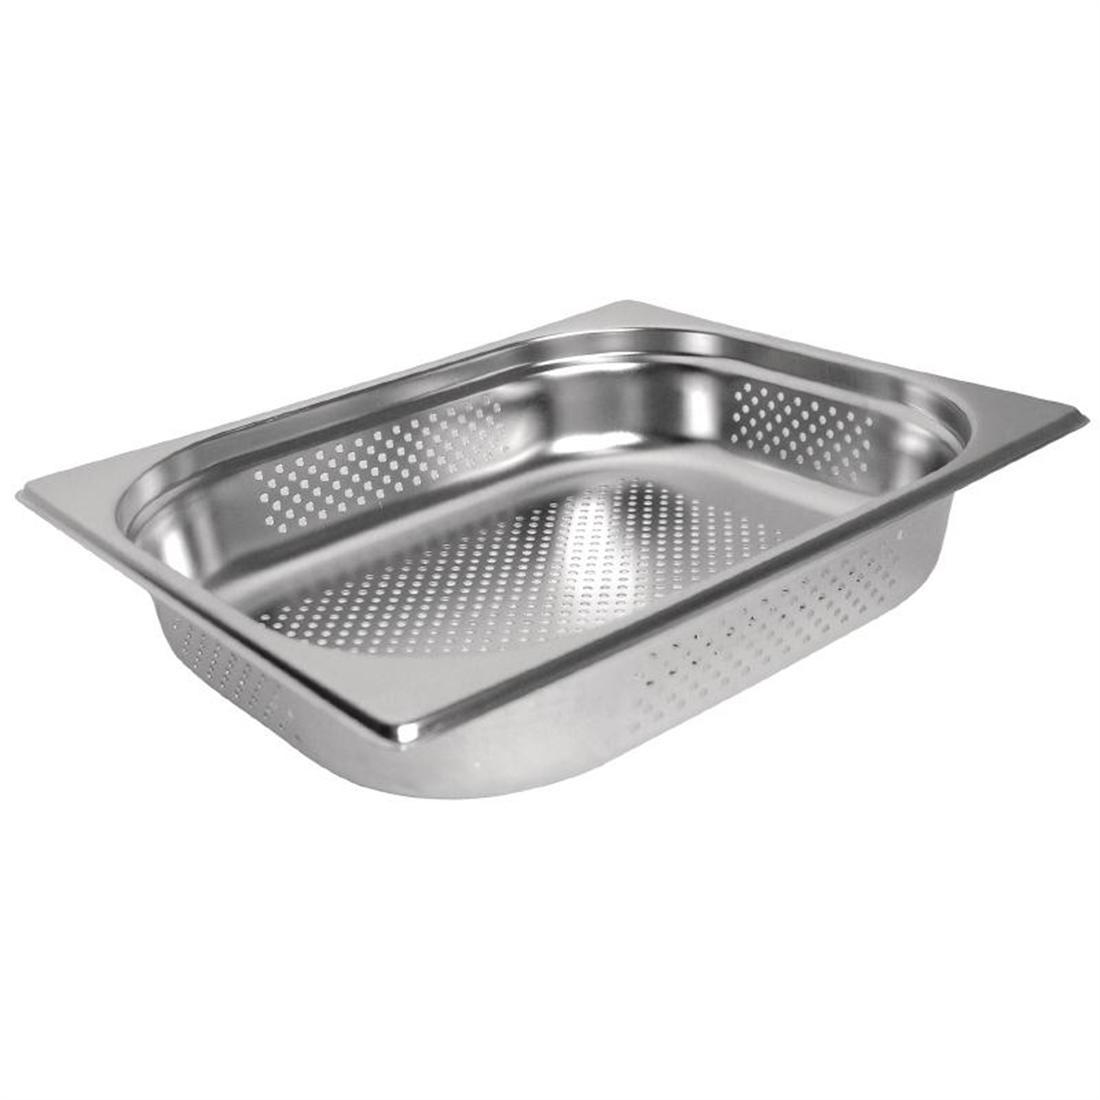 Vogue Stainless Steel Perforated 1/2 Gastronorm Pan 65mm - K844